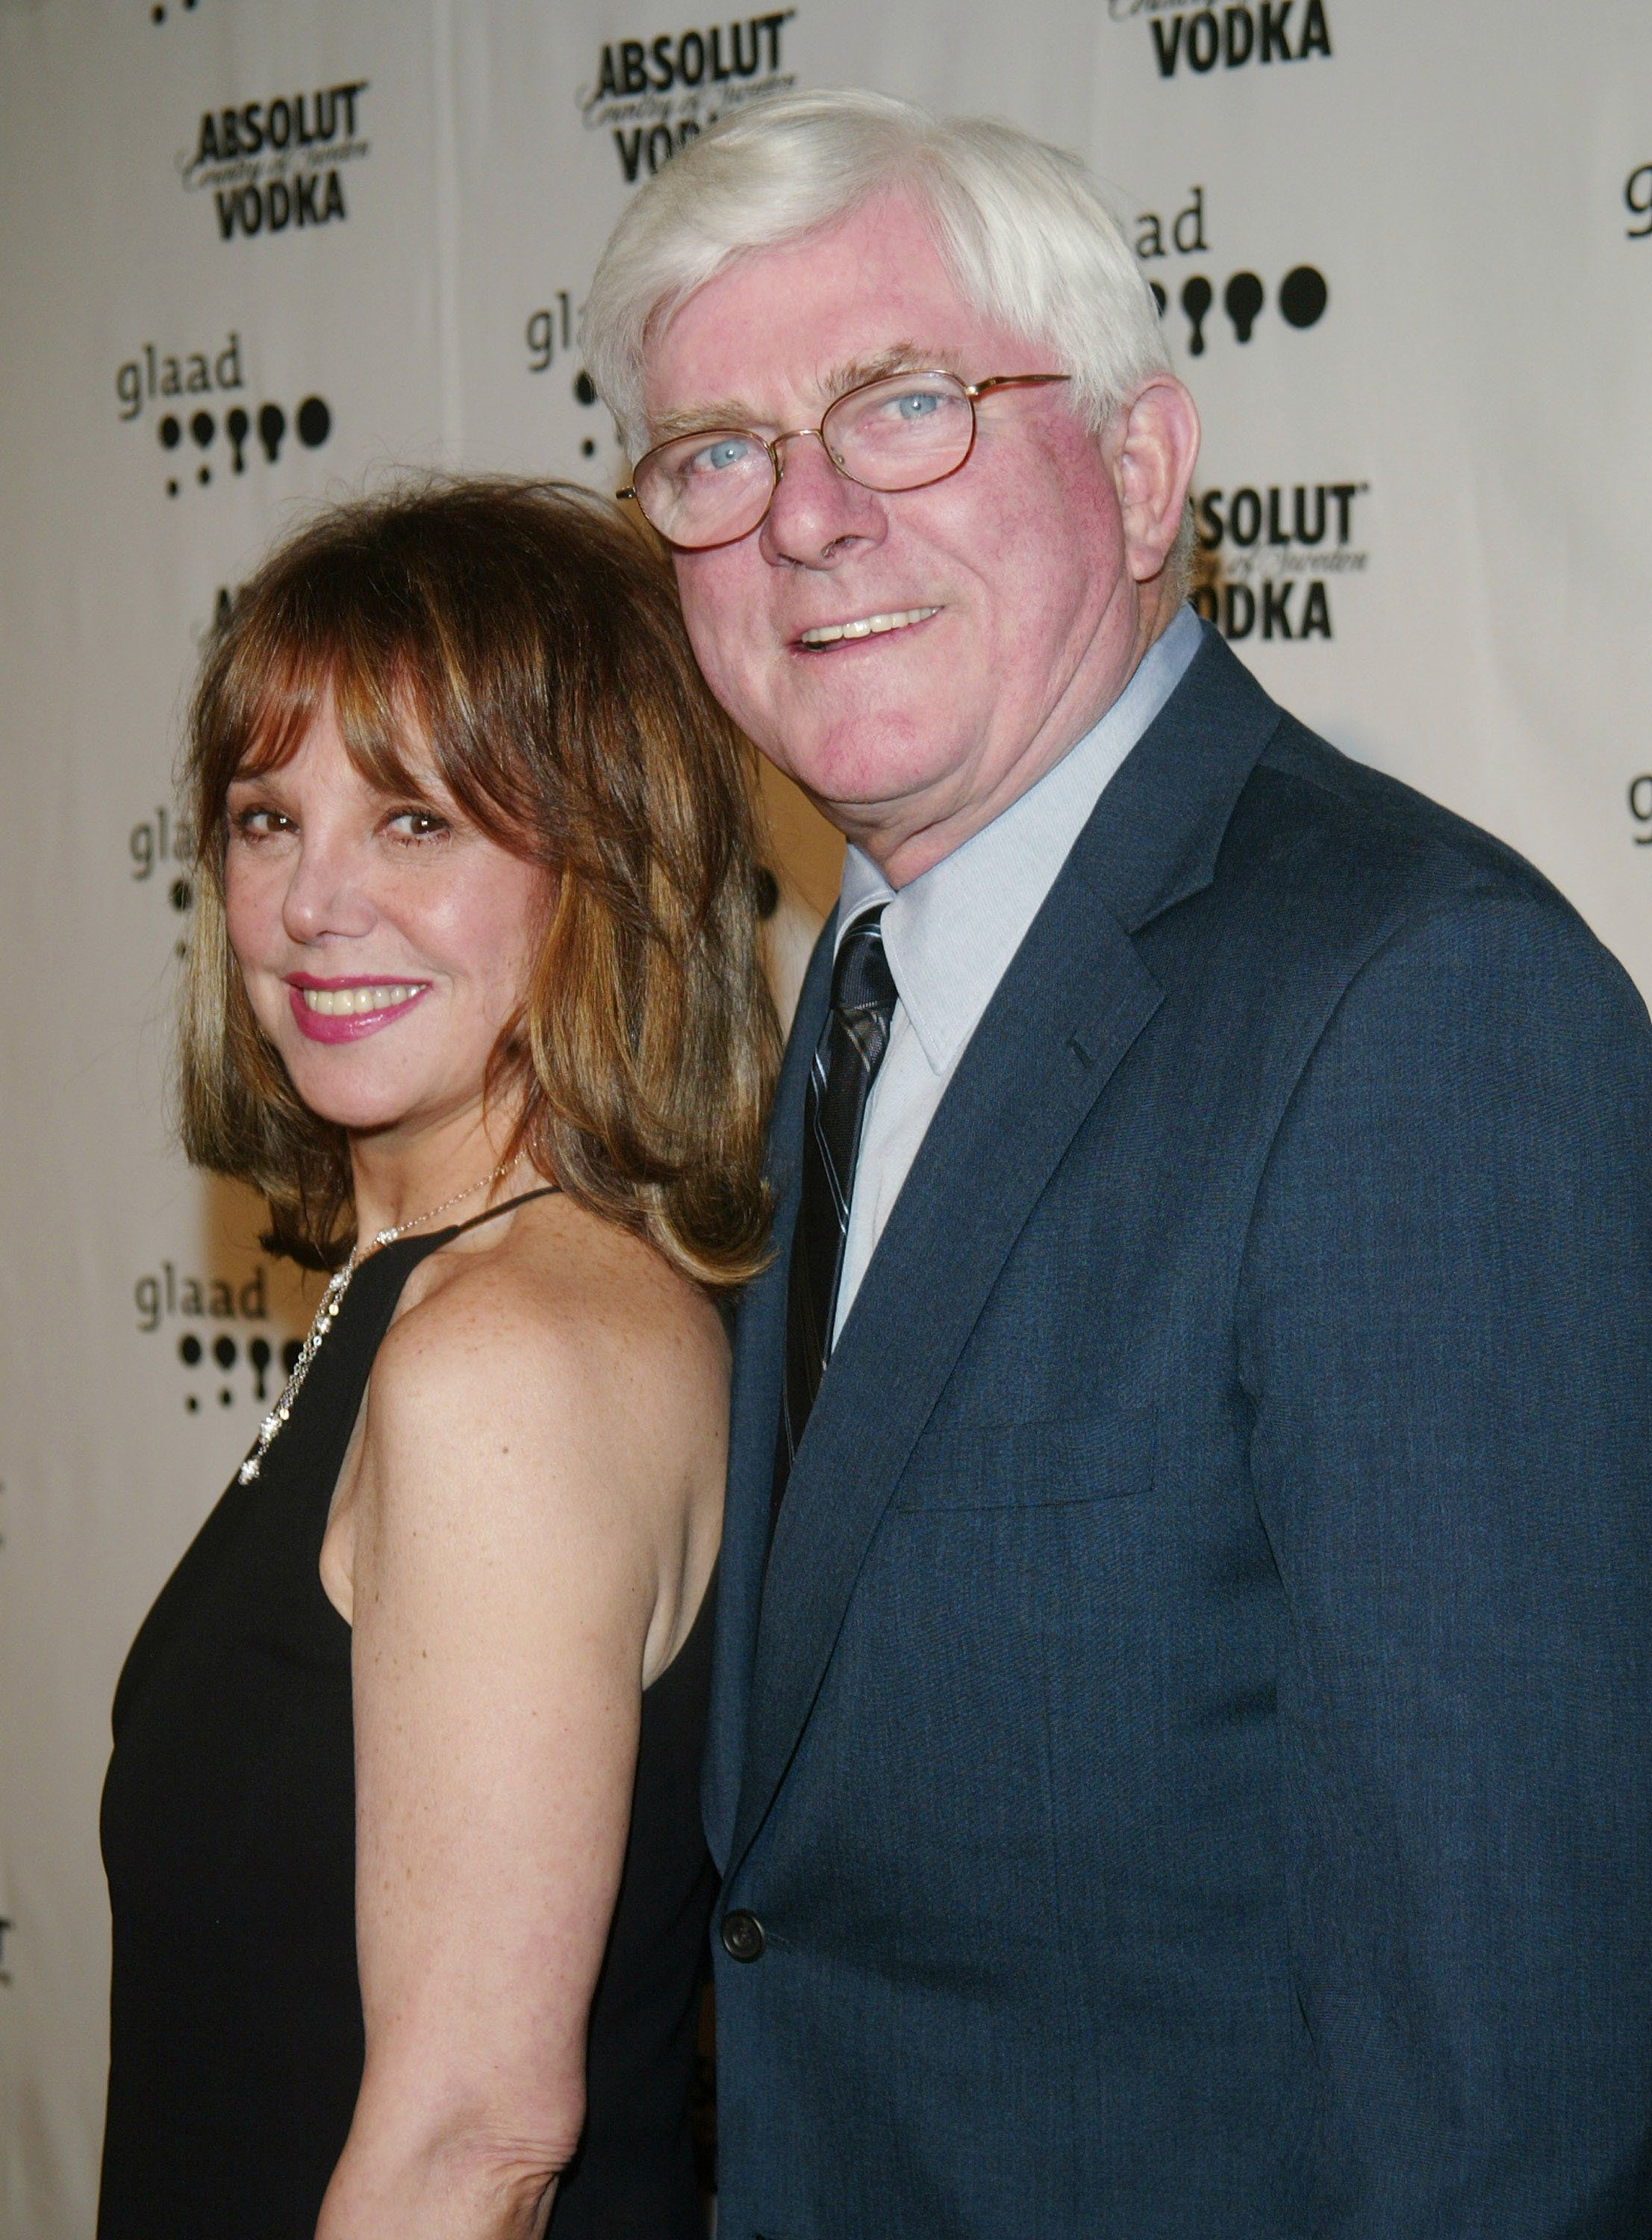 NEW YORK - APRIL 7:  (U.S. TABS AND HOLLYWOOD REPORTER OUT) Actress Marlo Thomas (L) and her husband talk show host Phil Donahue arrive at the 14th Annual GLAAD Media Awards at the Marriott Marquis April 7, 2003 in New York City.  (Photo by Evan Agostini/Getty Images)